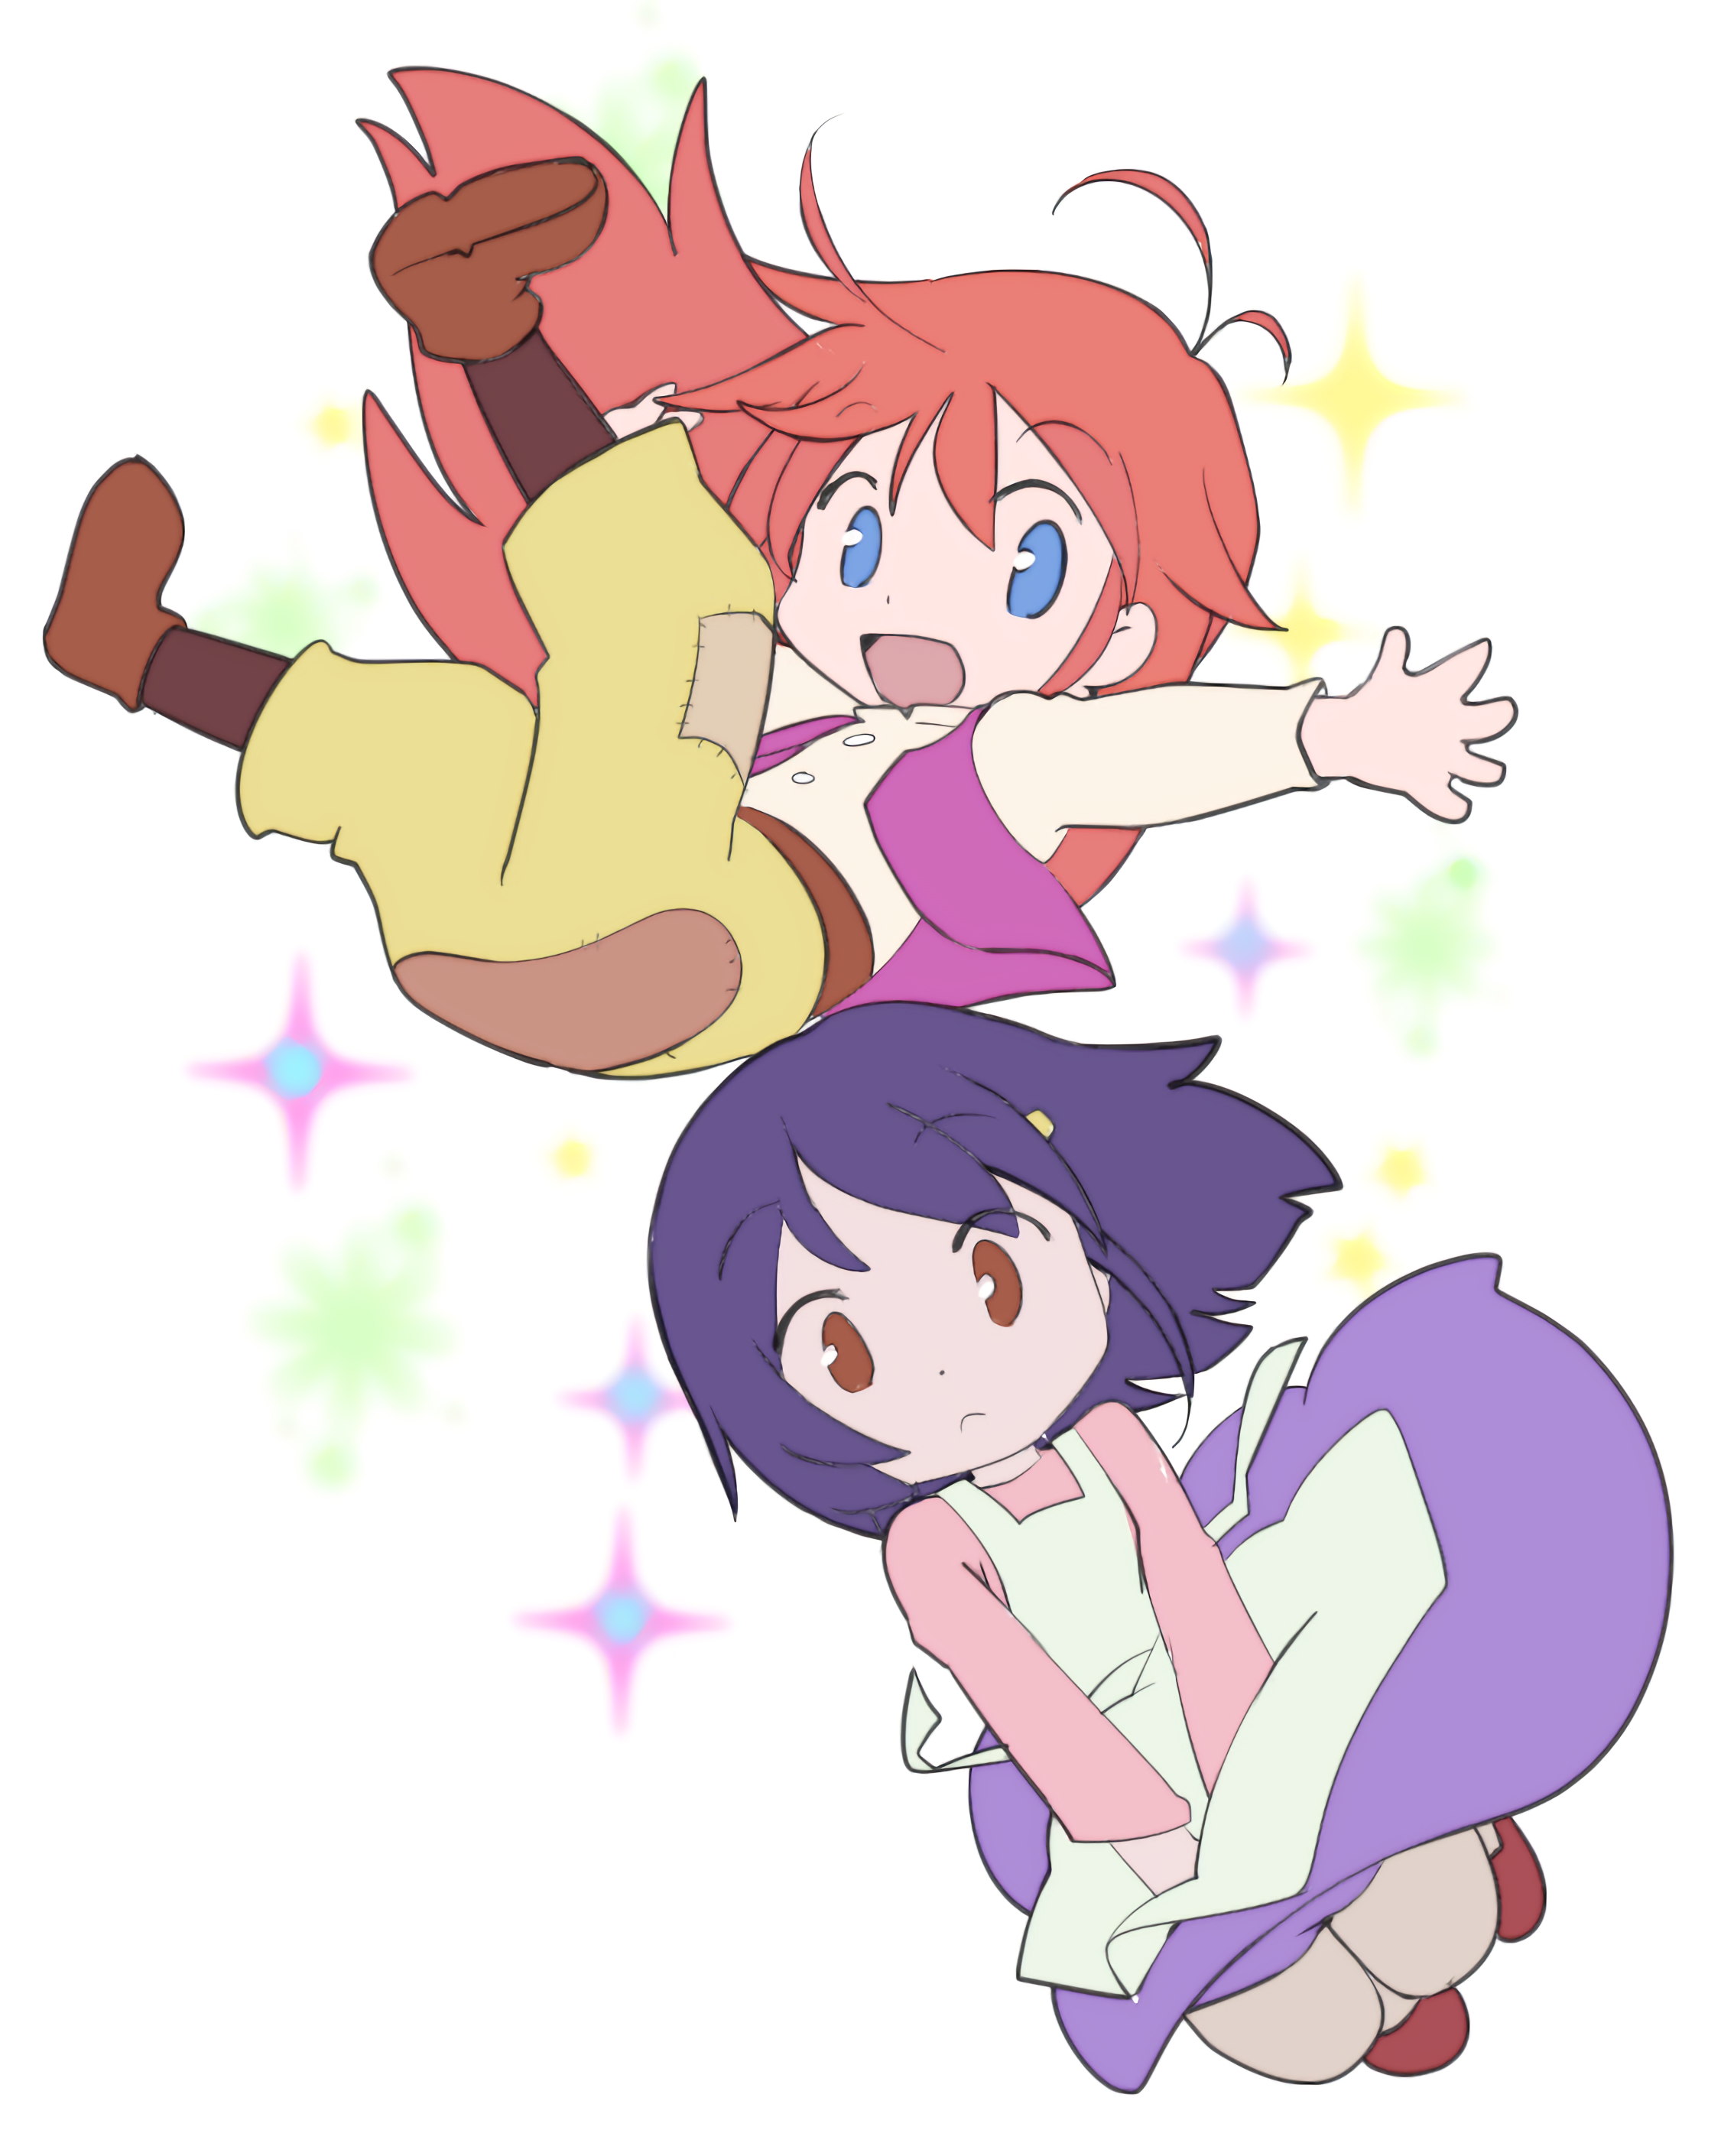 The cutest! [Flip Flappers]